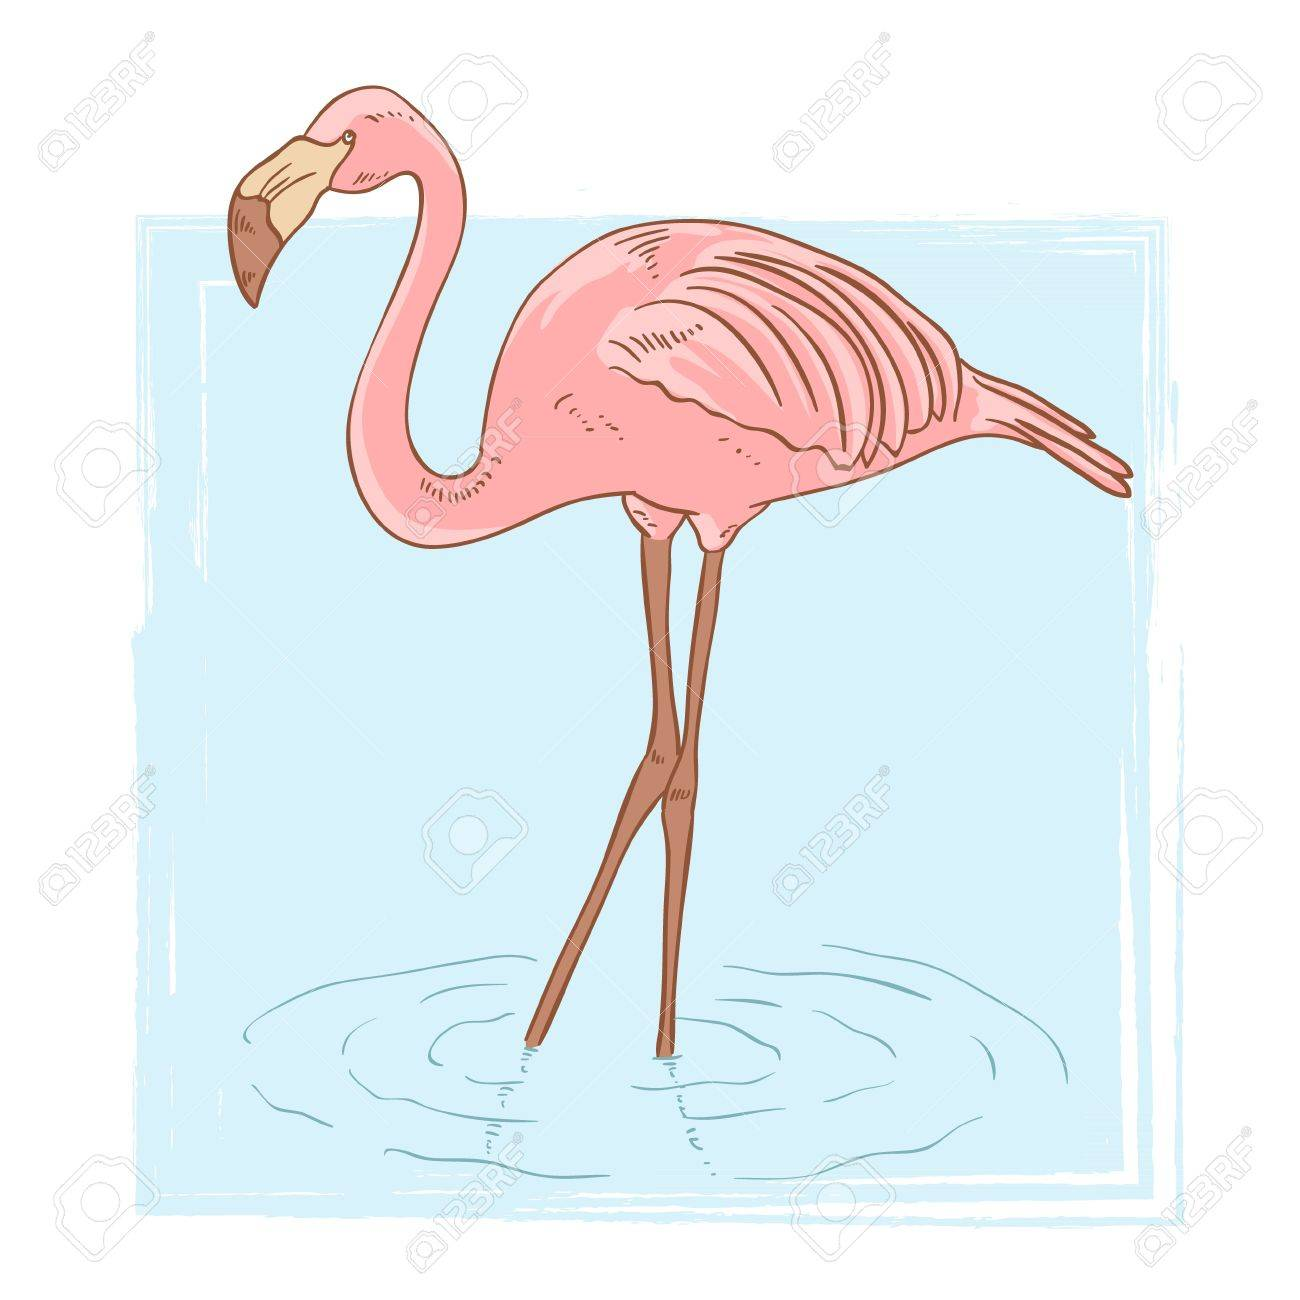 Pink flamingo standing in the water on isolated background Stock Vector - 14399921